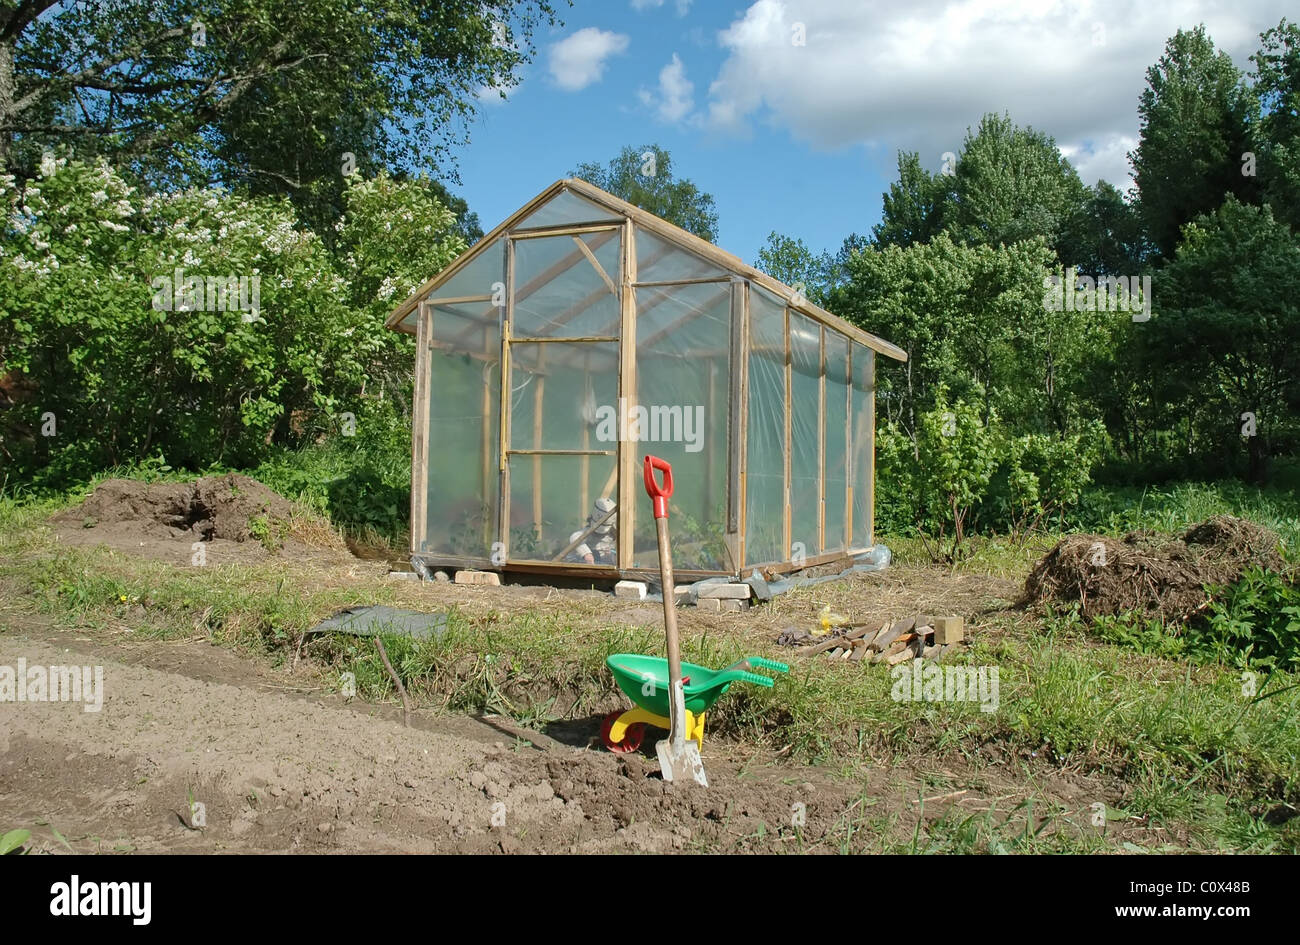 laminated greenhouse in garden - Stock Image